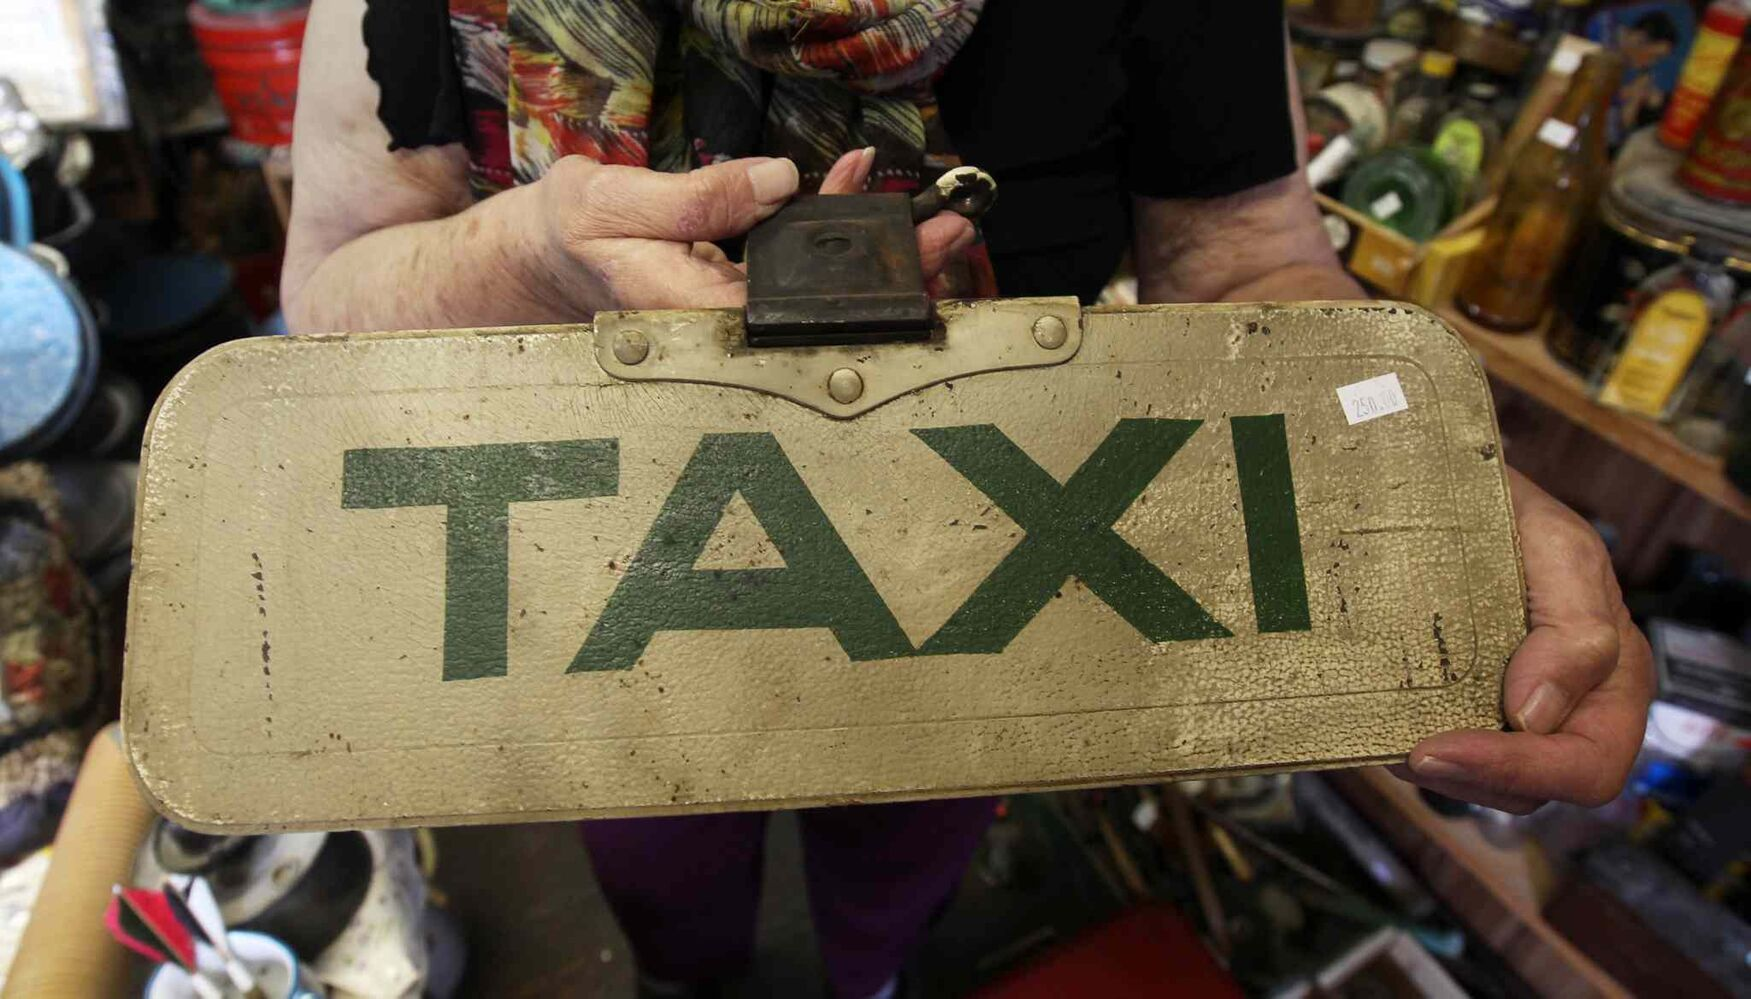 Vivian Proden holds old taxi sign for sale. Proden owns Junk for Joy just East of  Portage La Prairie, Manitoba on Hyw. #1 - Vivian, 84, is retiring after 34 years in the junk business and is having a 50% off sale starting this Friday.  ((JOE BRYKSA / WINNIPEG FREE PRESS))